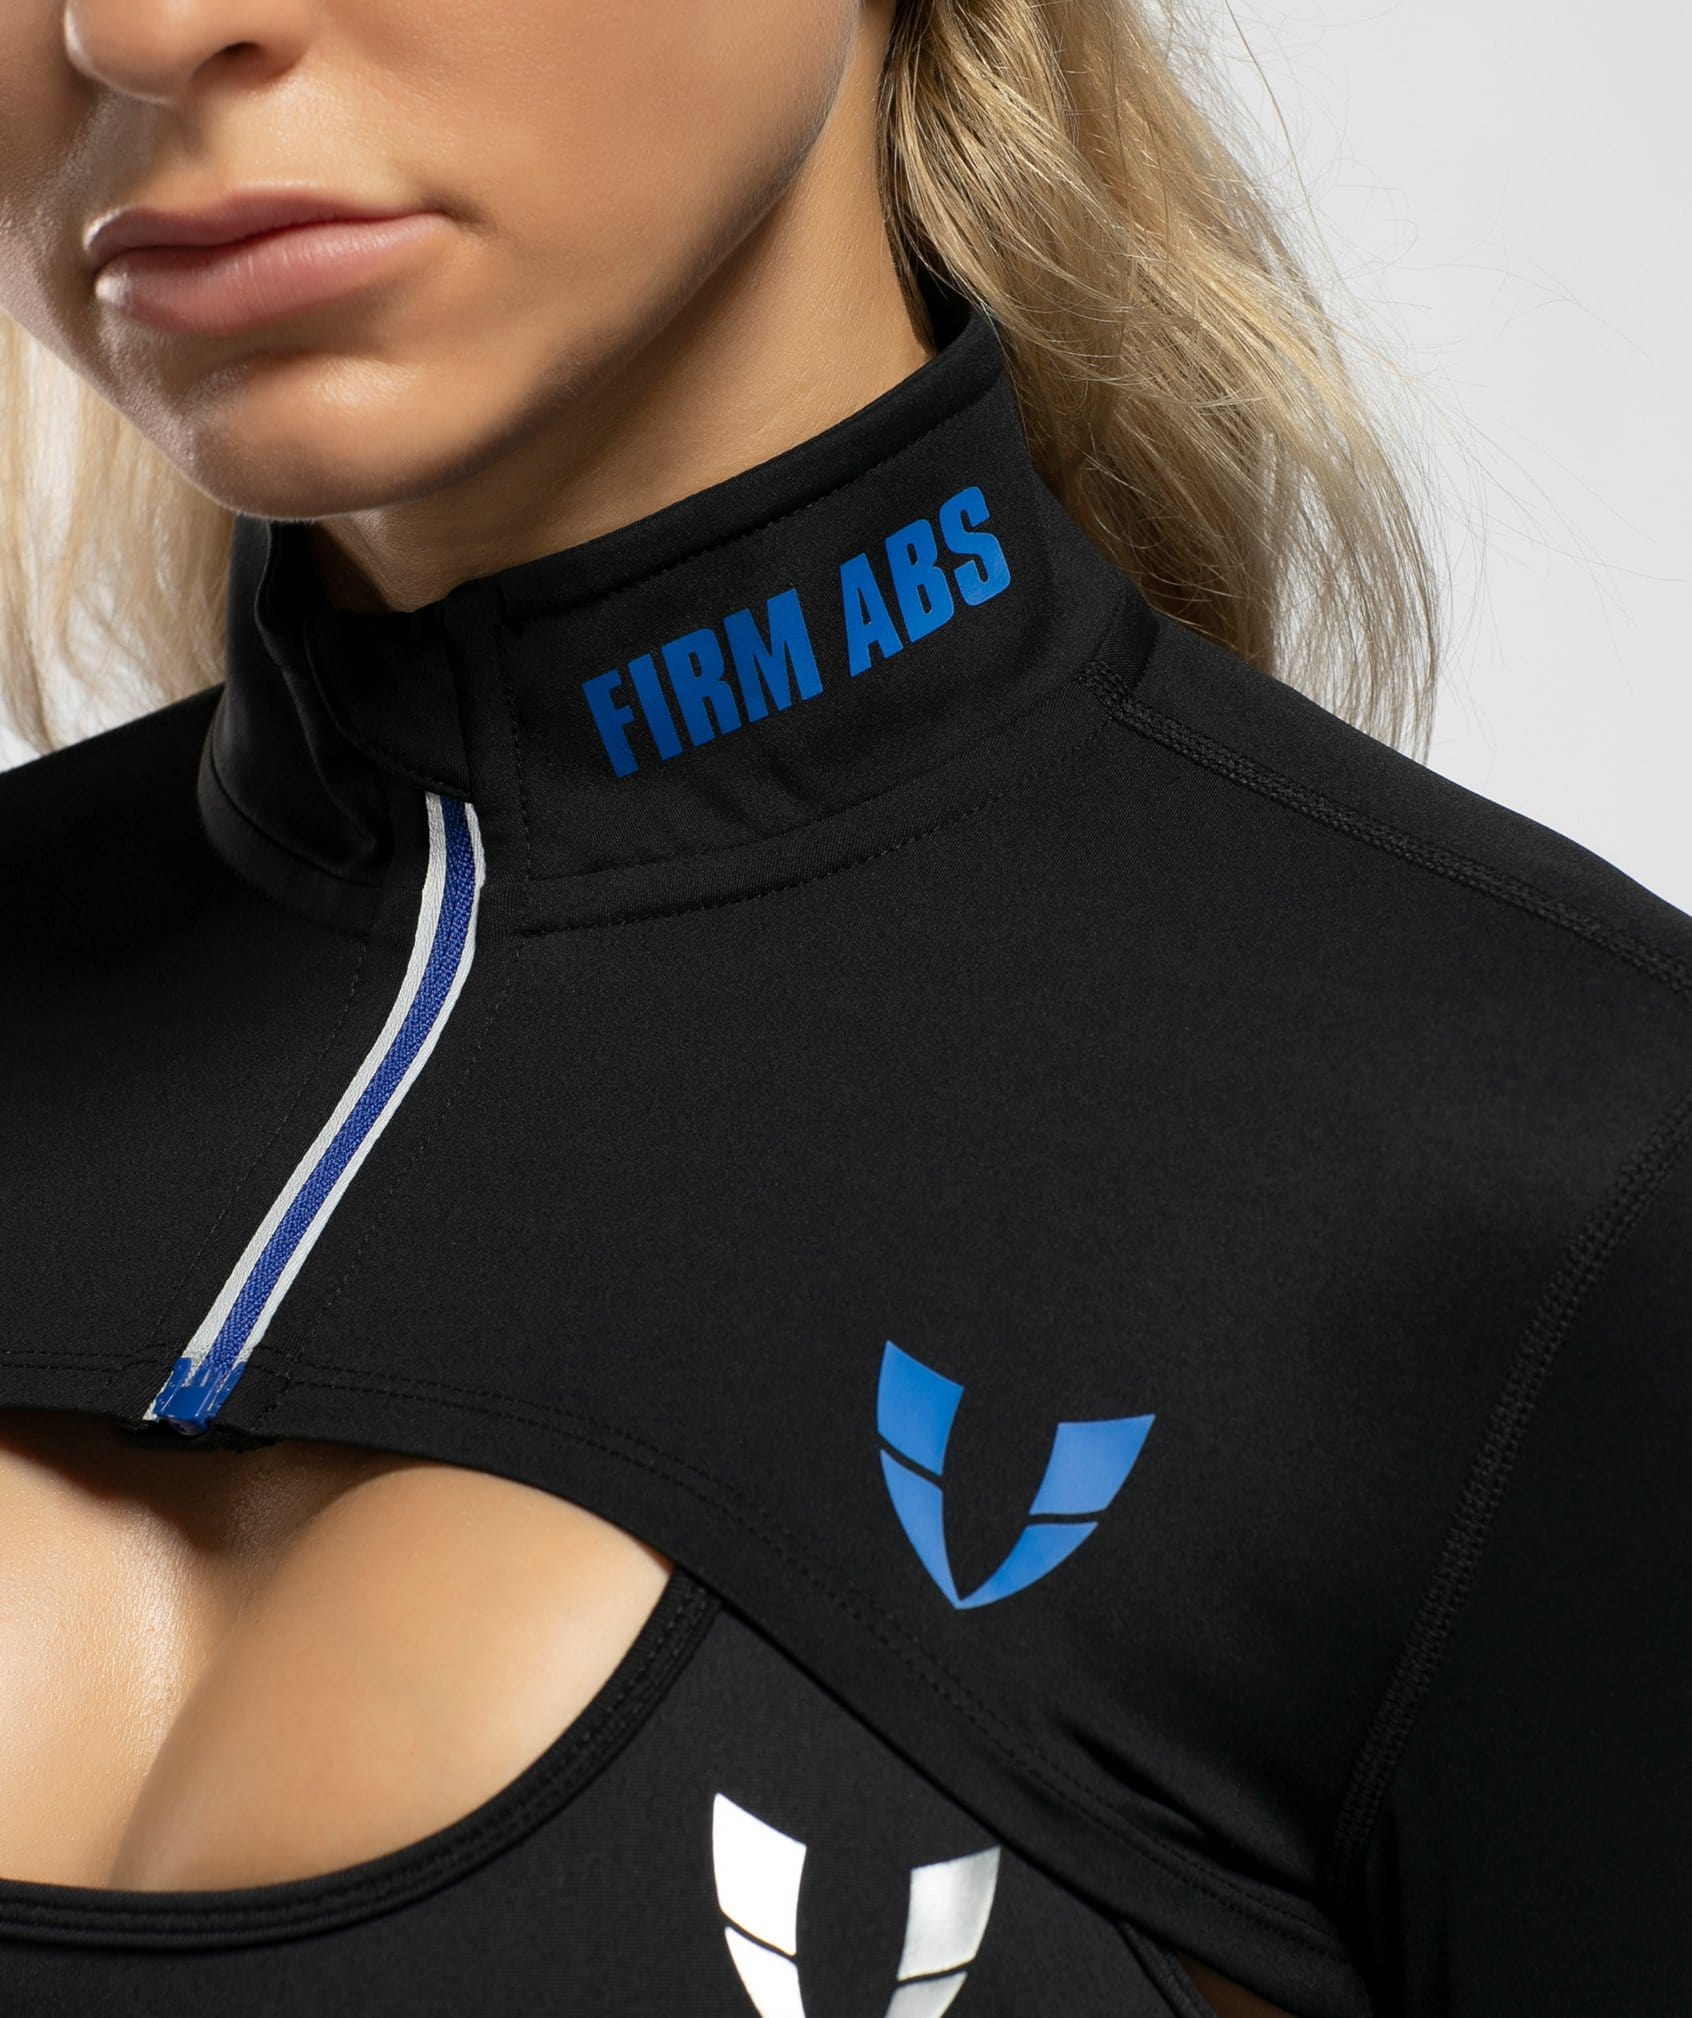 Zip Up Long Sleeve Extreme Crop Top - Firm Abs Fitness